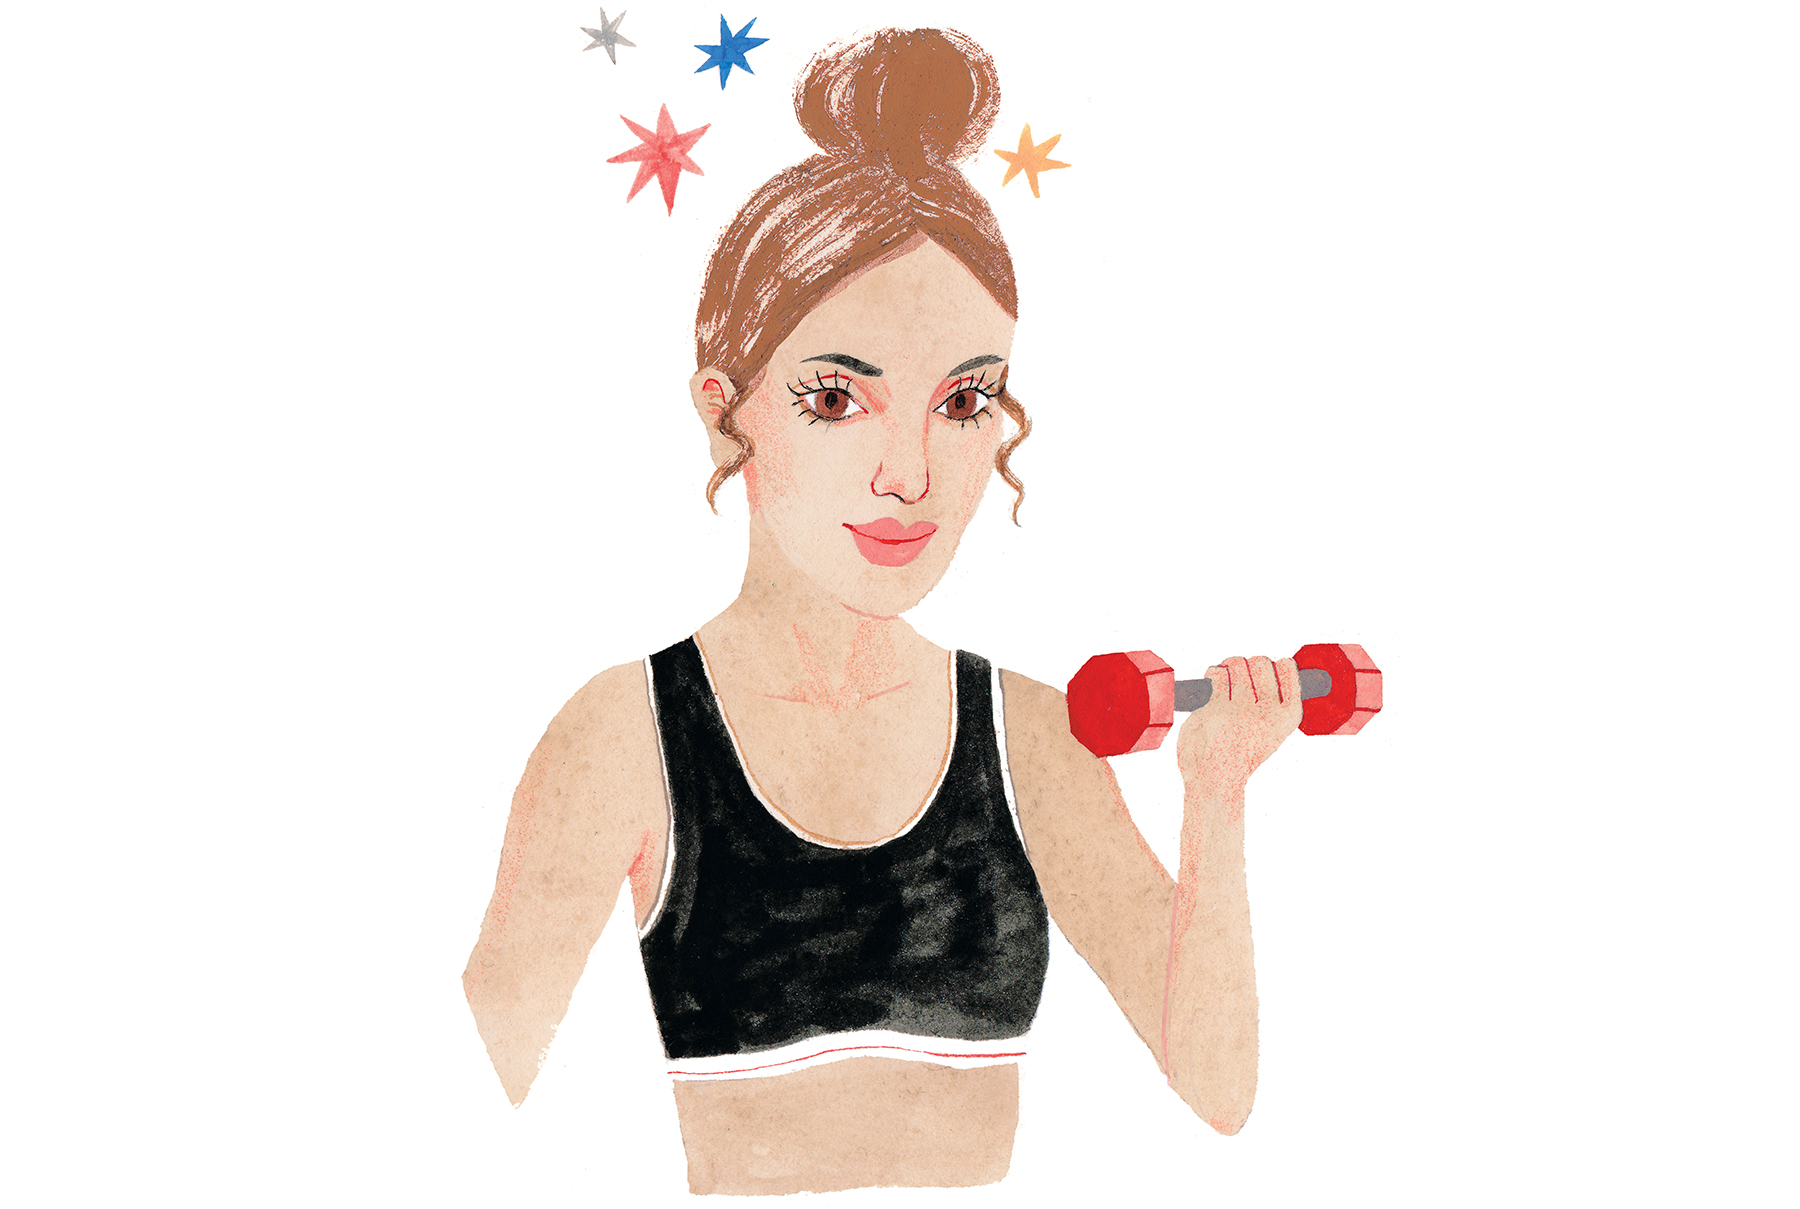 Illustration of woman working out with hair in topknot